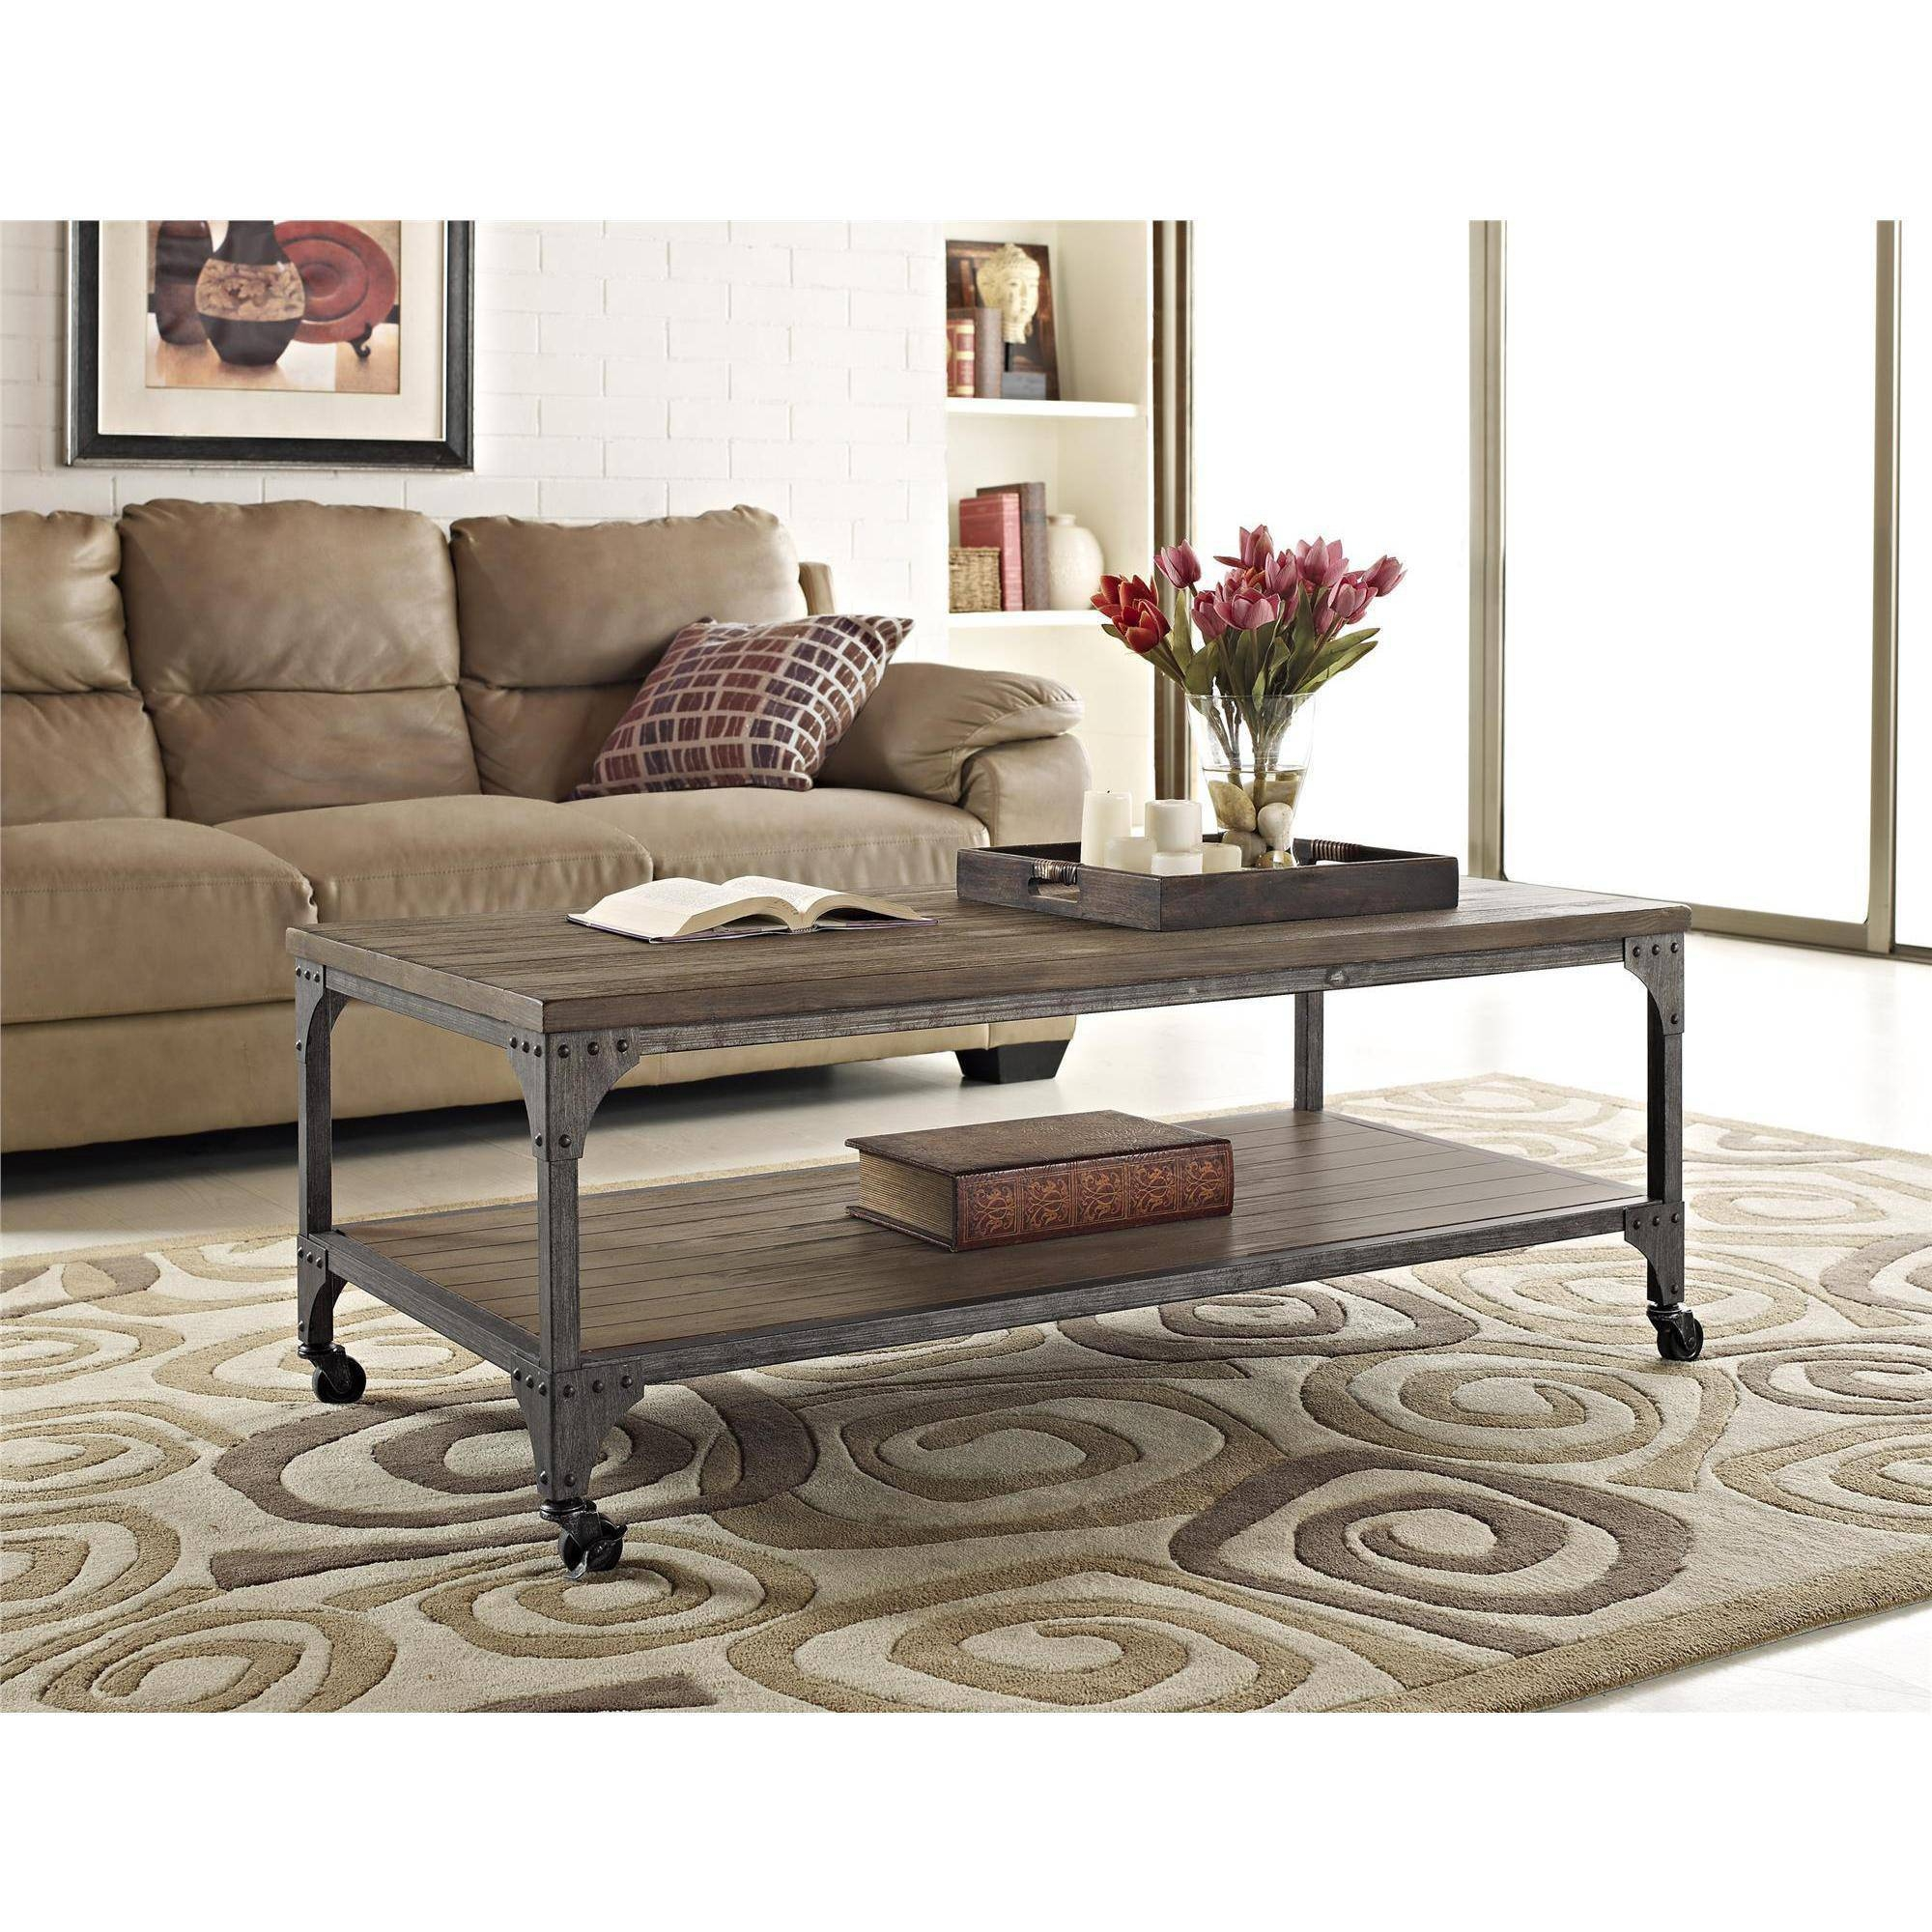 Ameriwood Home Cecil Wood Veneer Coffee Table, Rustic Medium Oak in Rustic Coffee Table and Tv Stand (Image 1 of 15)